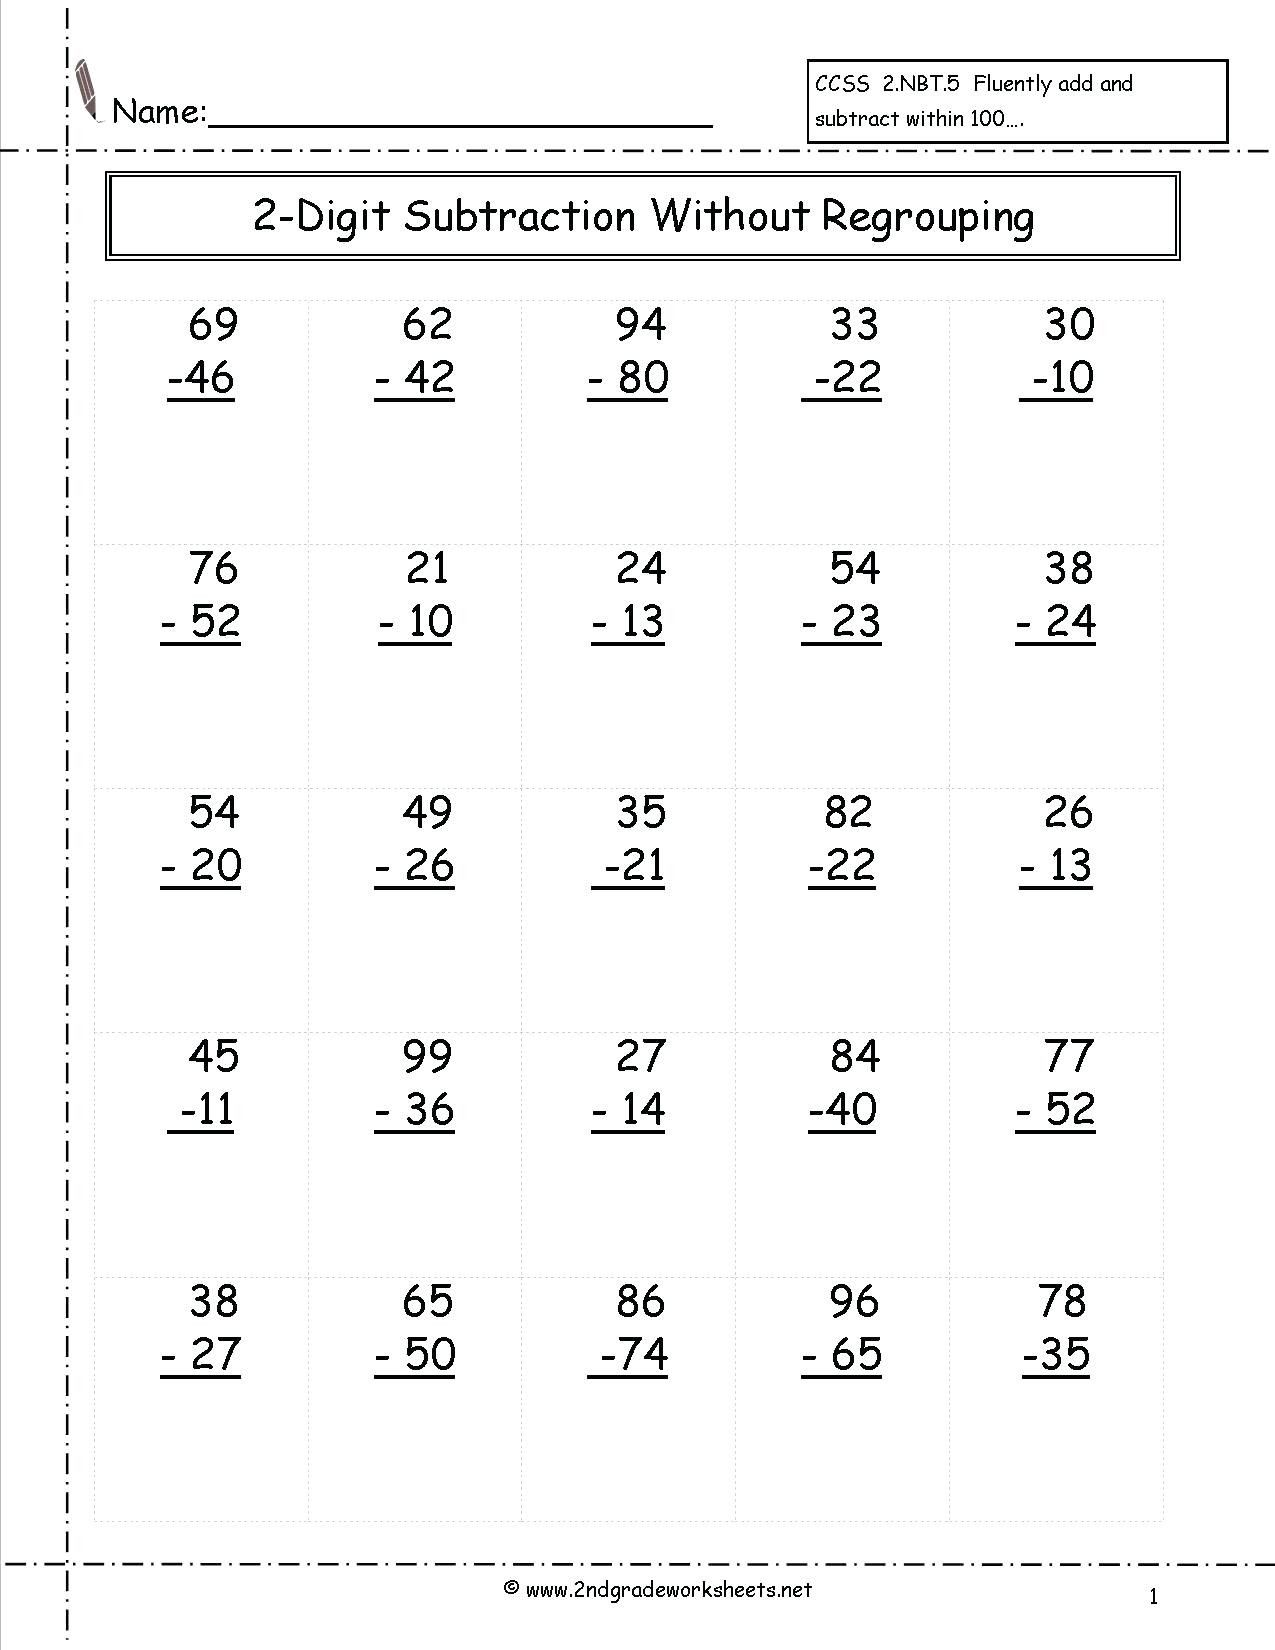 small resolution of Subtraction Worksheets for Grade 1 Of 5 Free Math Worksheets First Grade 1  Addition Add In Columns 2 Digit Plus 1 Digit No Regroupi - Free Templates